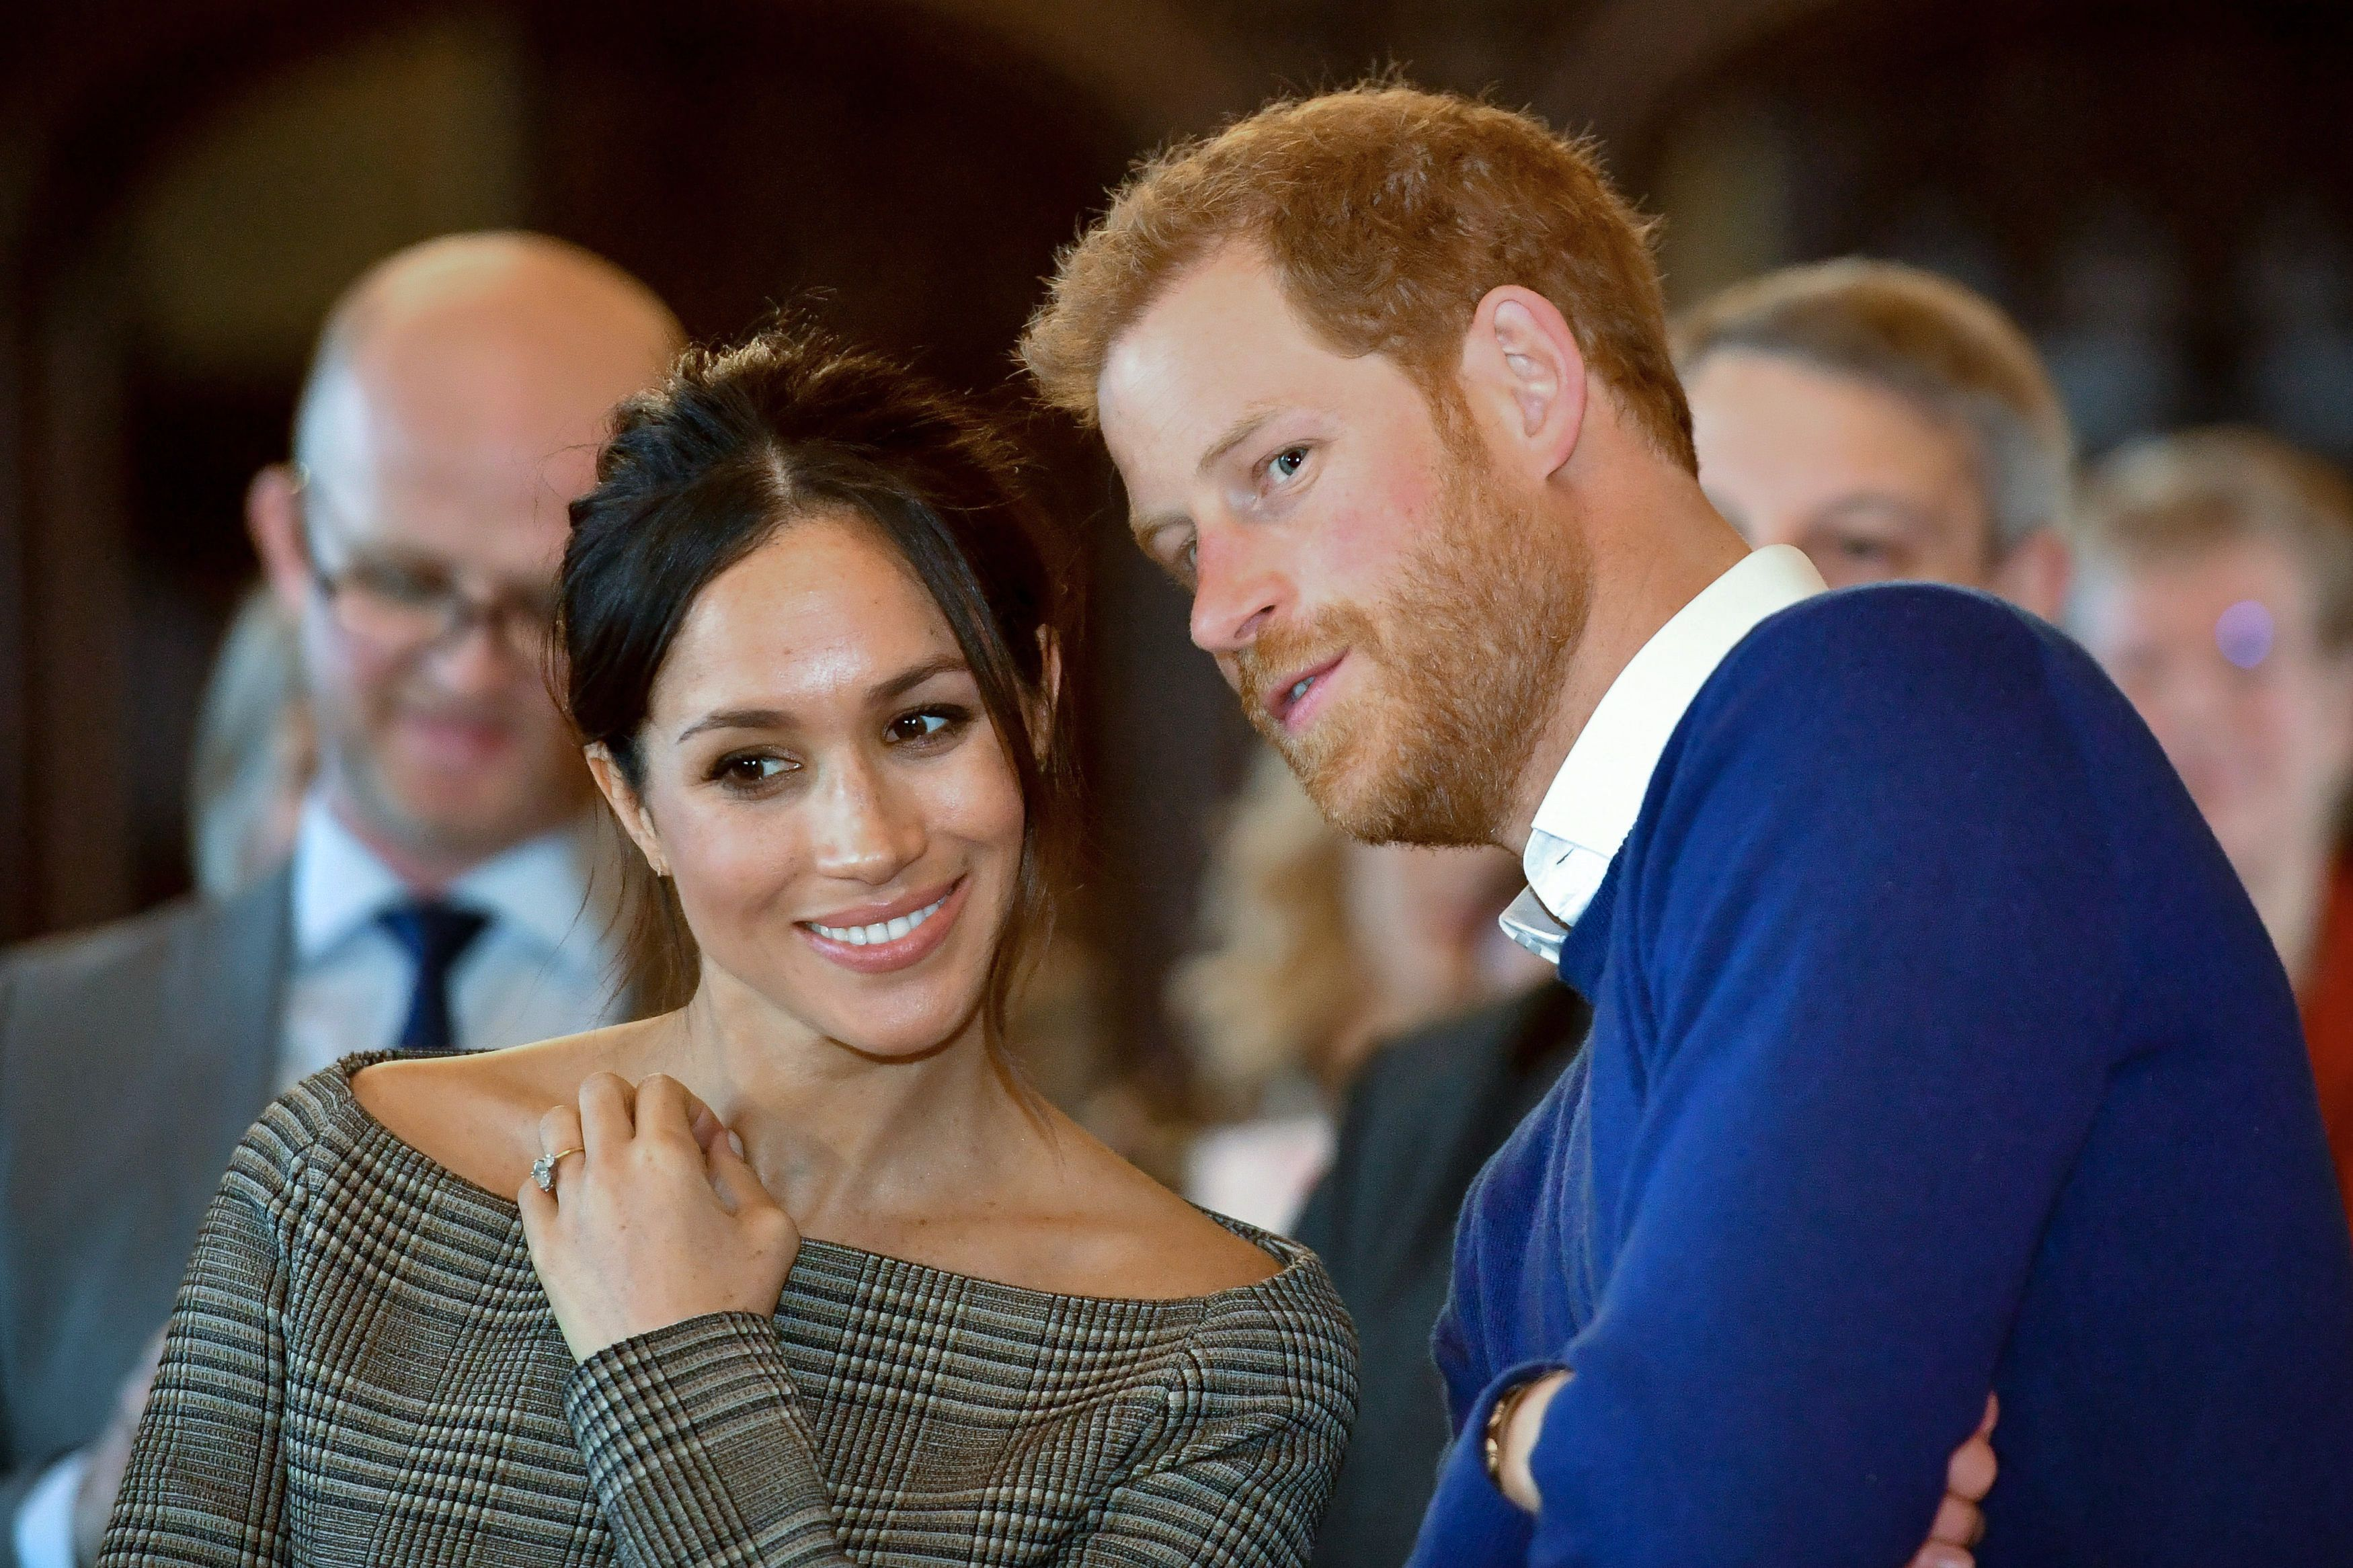 TOPSHOT- Britain's Prince Harry and his fiancée US actress Meghan Markle watch a dance performance by Jukebox Collective during a visit at Cardiff Castle in Cardiff south Wales